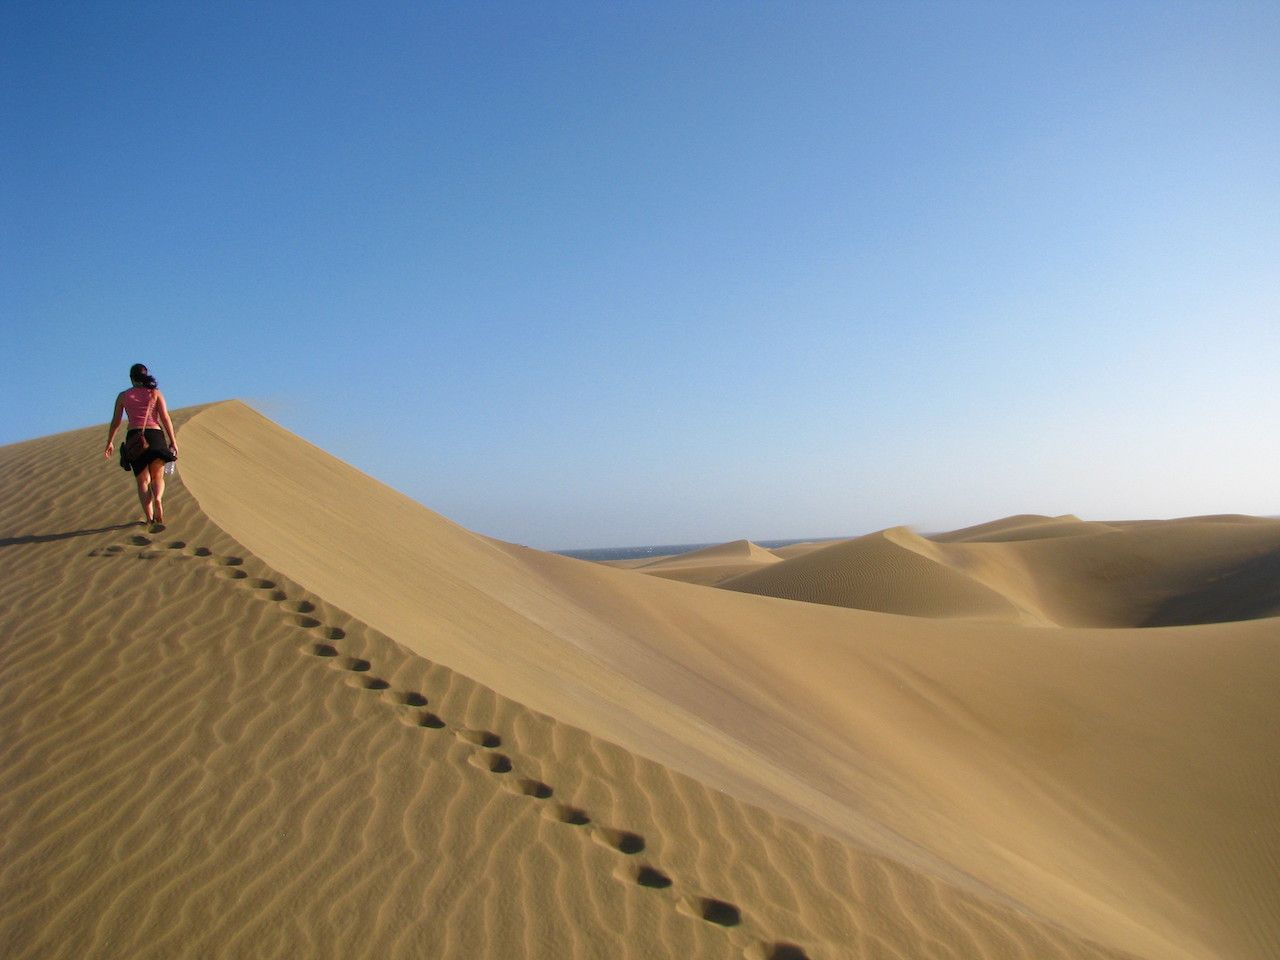 Desert walk on sand dunes in Gran Canaria